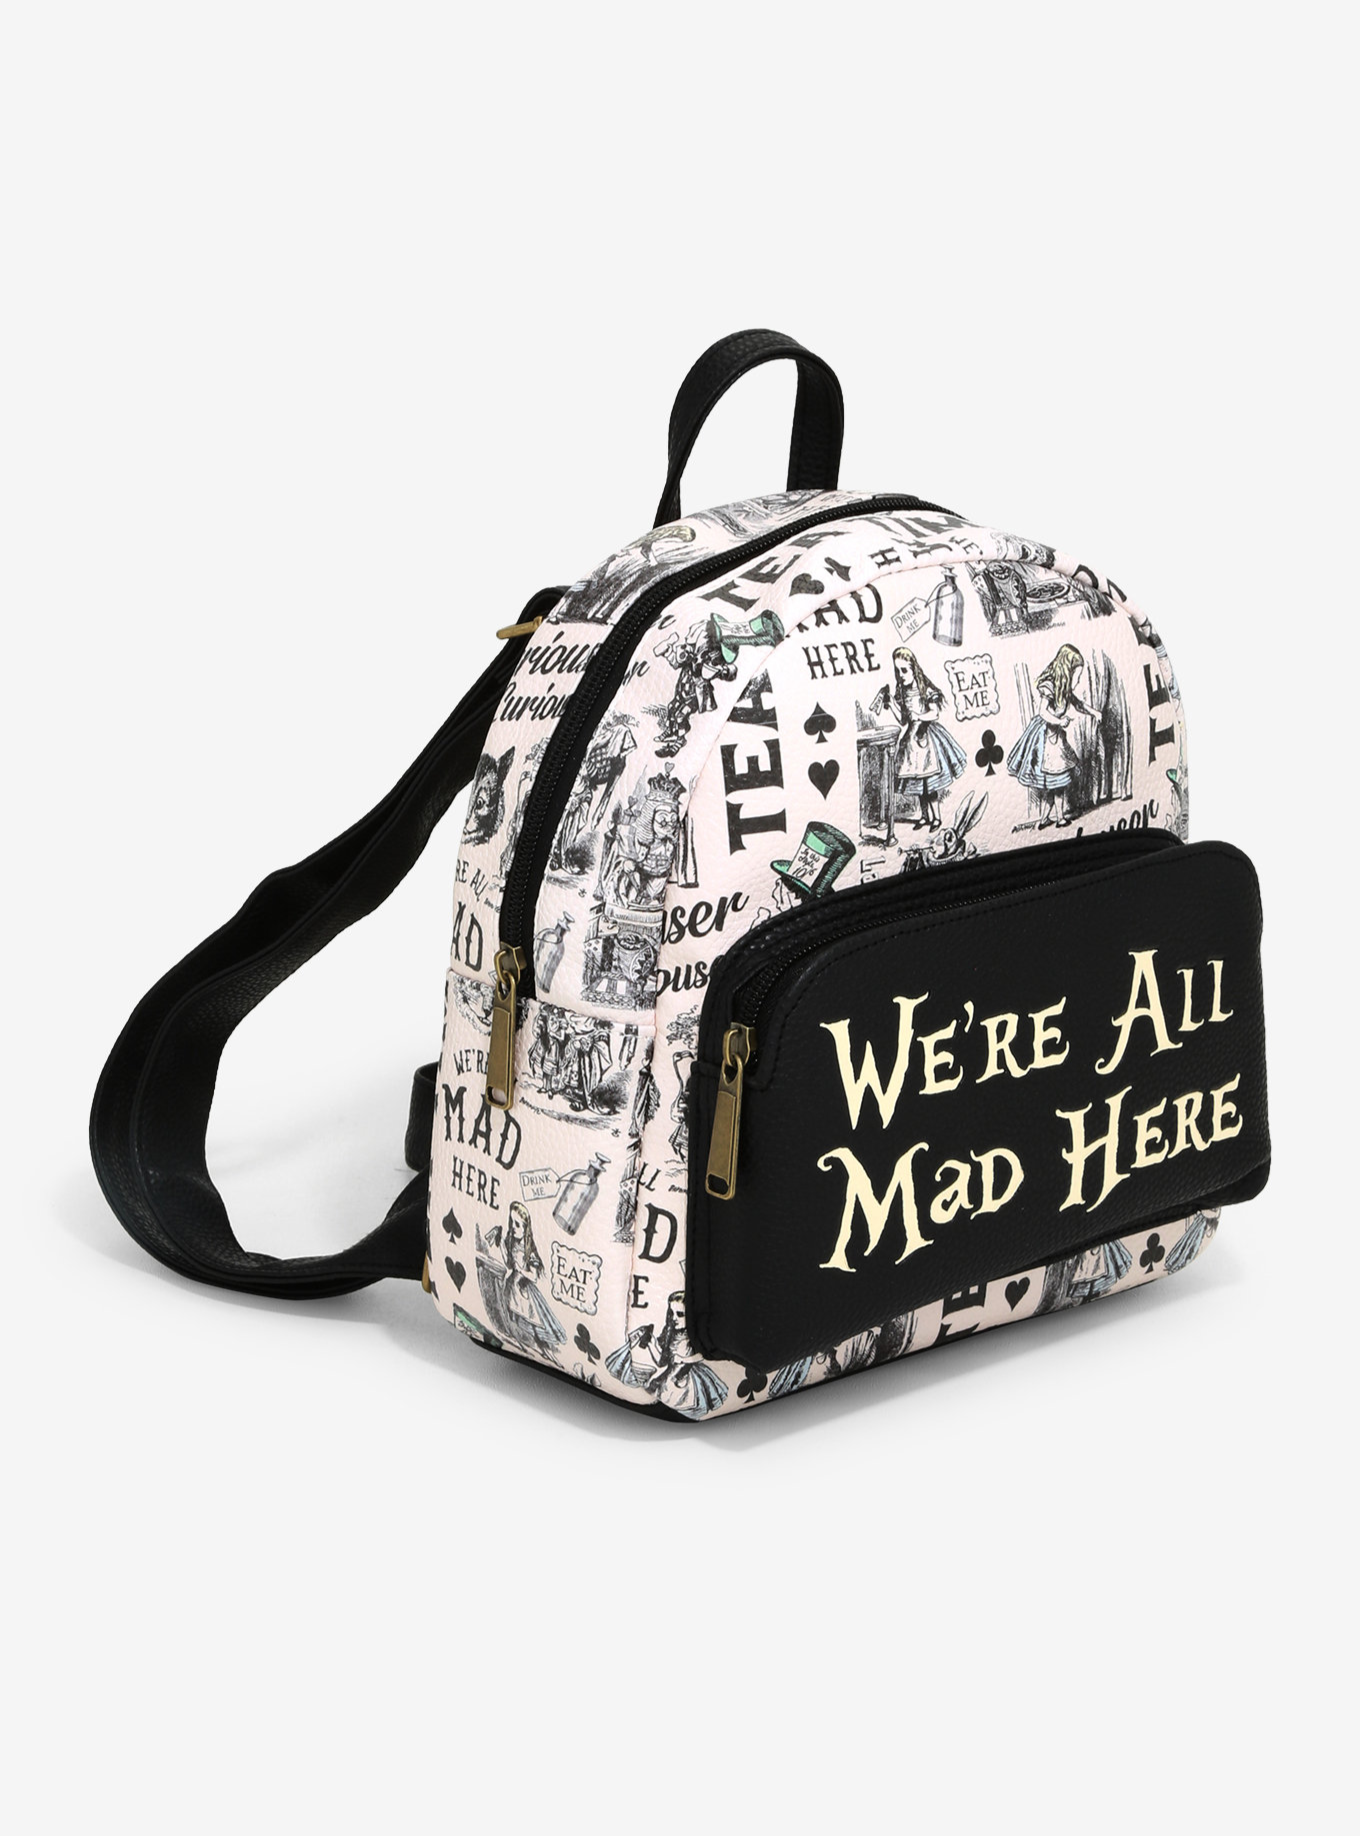 ALICE IN WONDERLAND SKETCH MINI BACKPACK